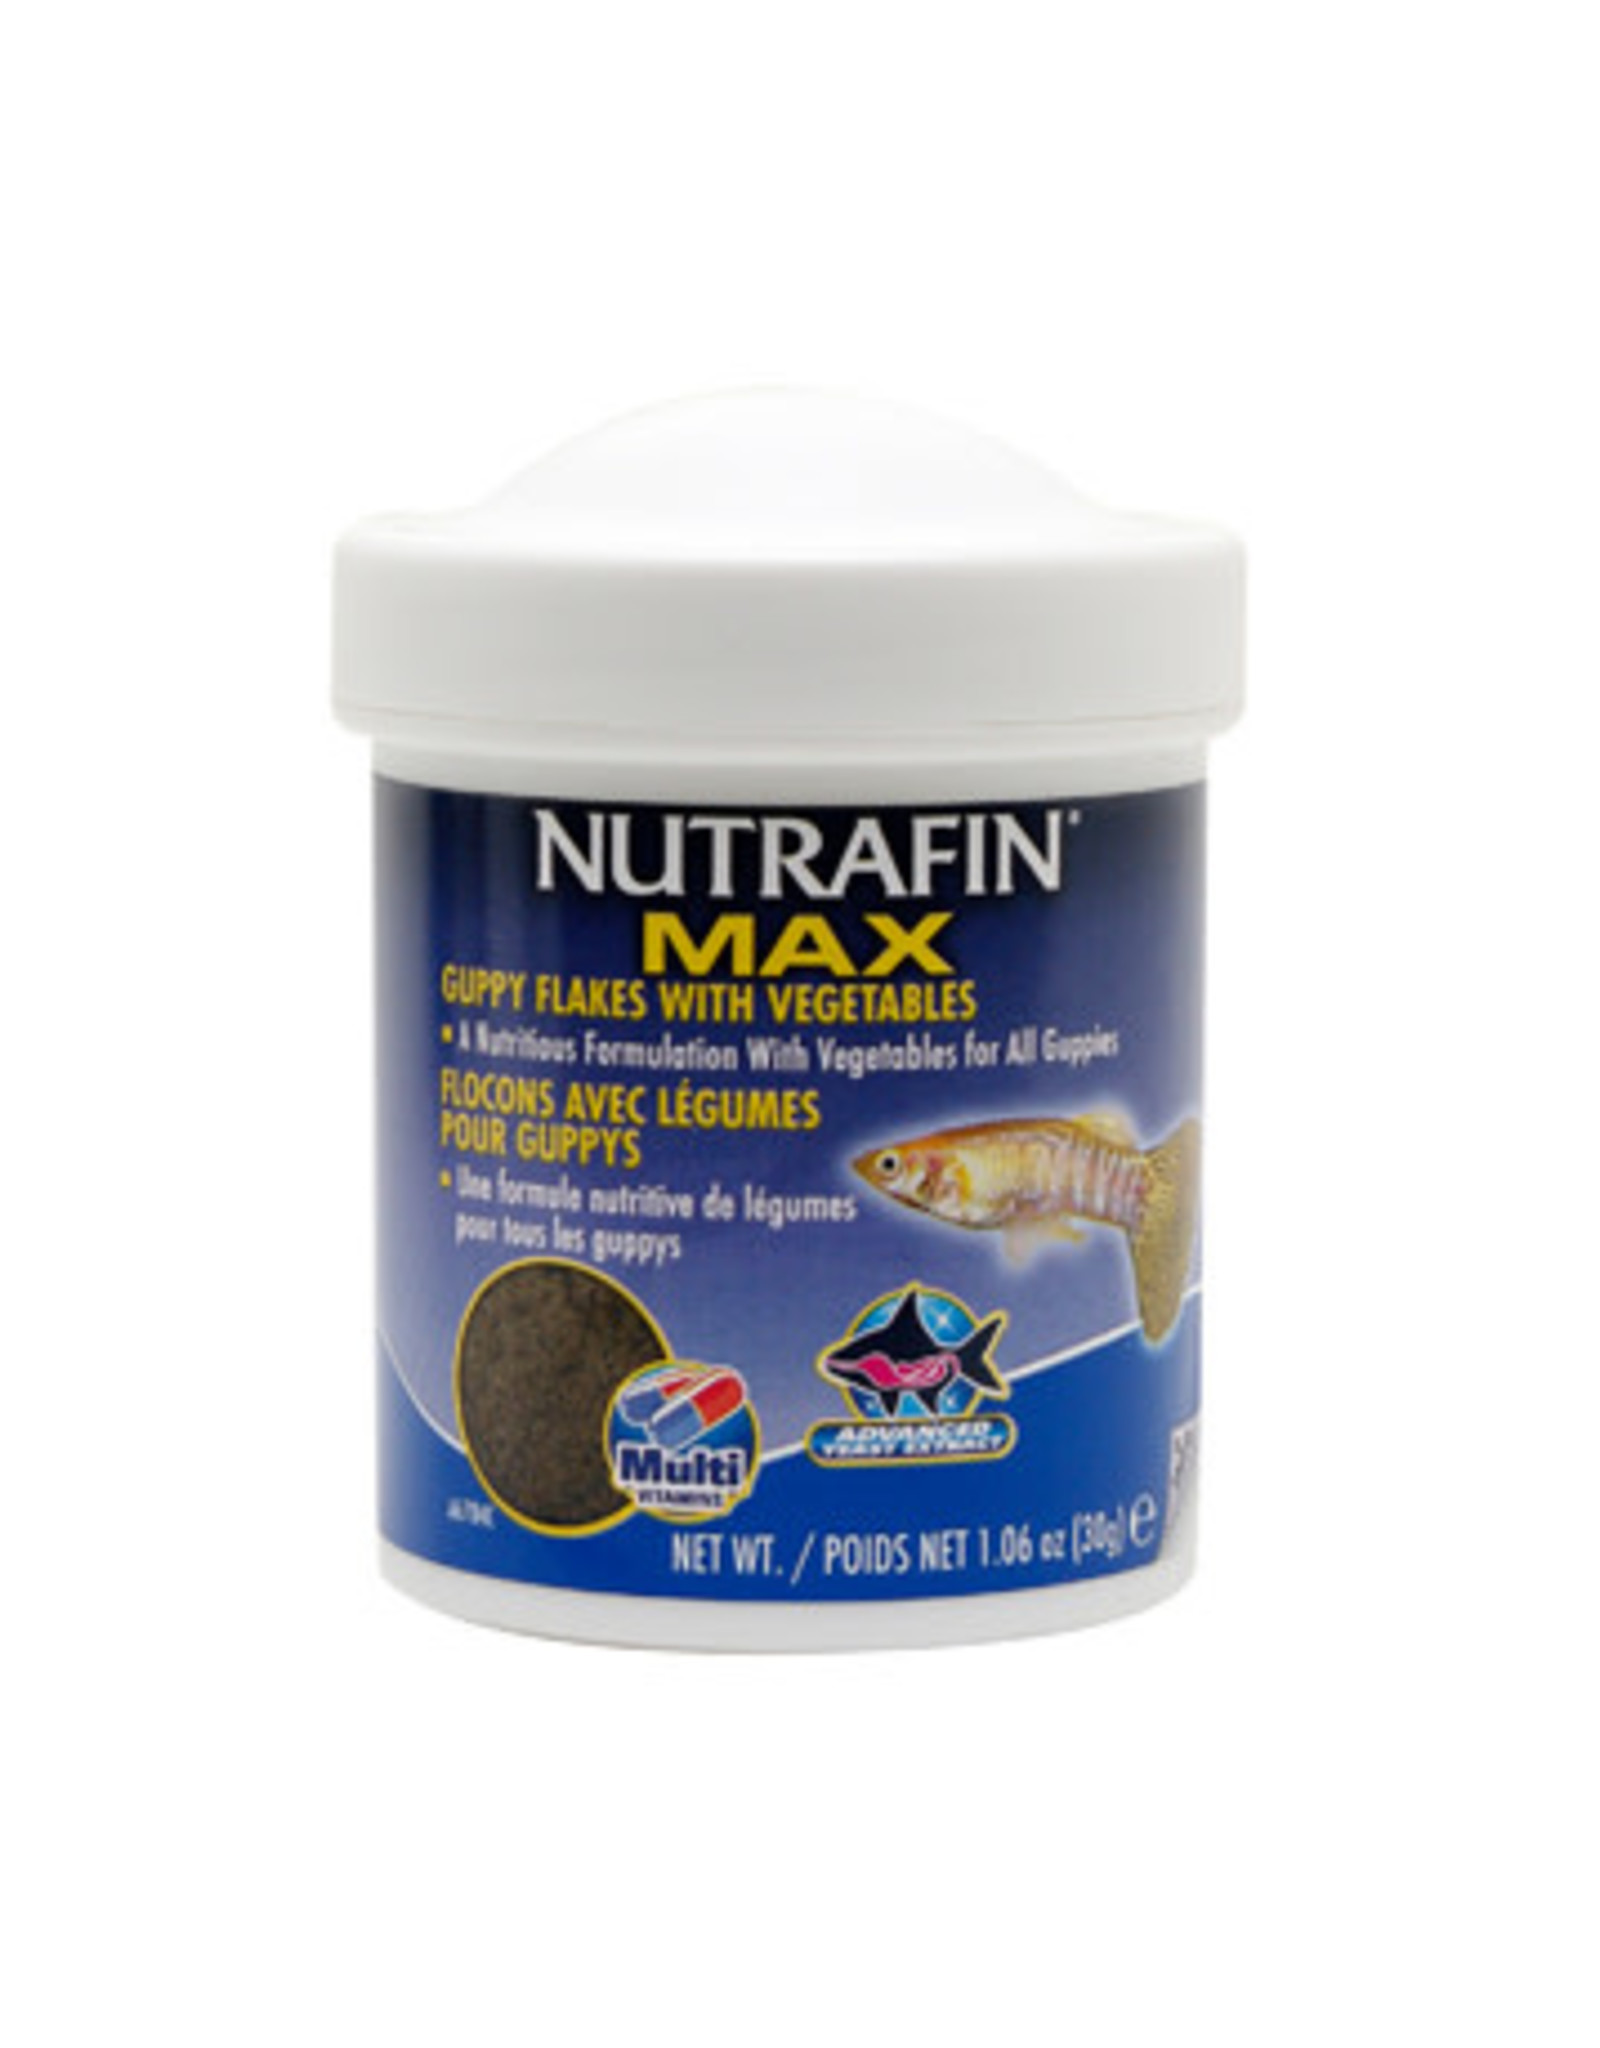 Nutrafin Nutrafin Max Guppy Flakes With Vegetables 30 g (1.06 oz)